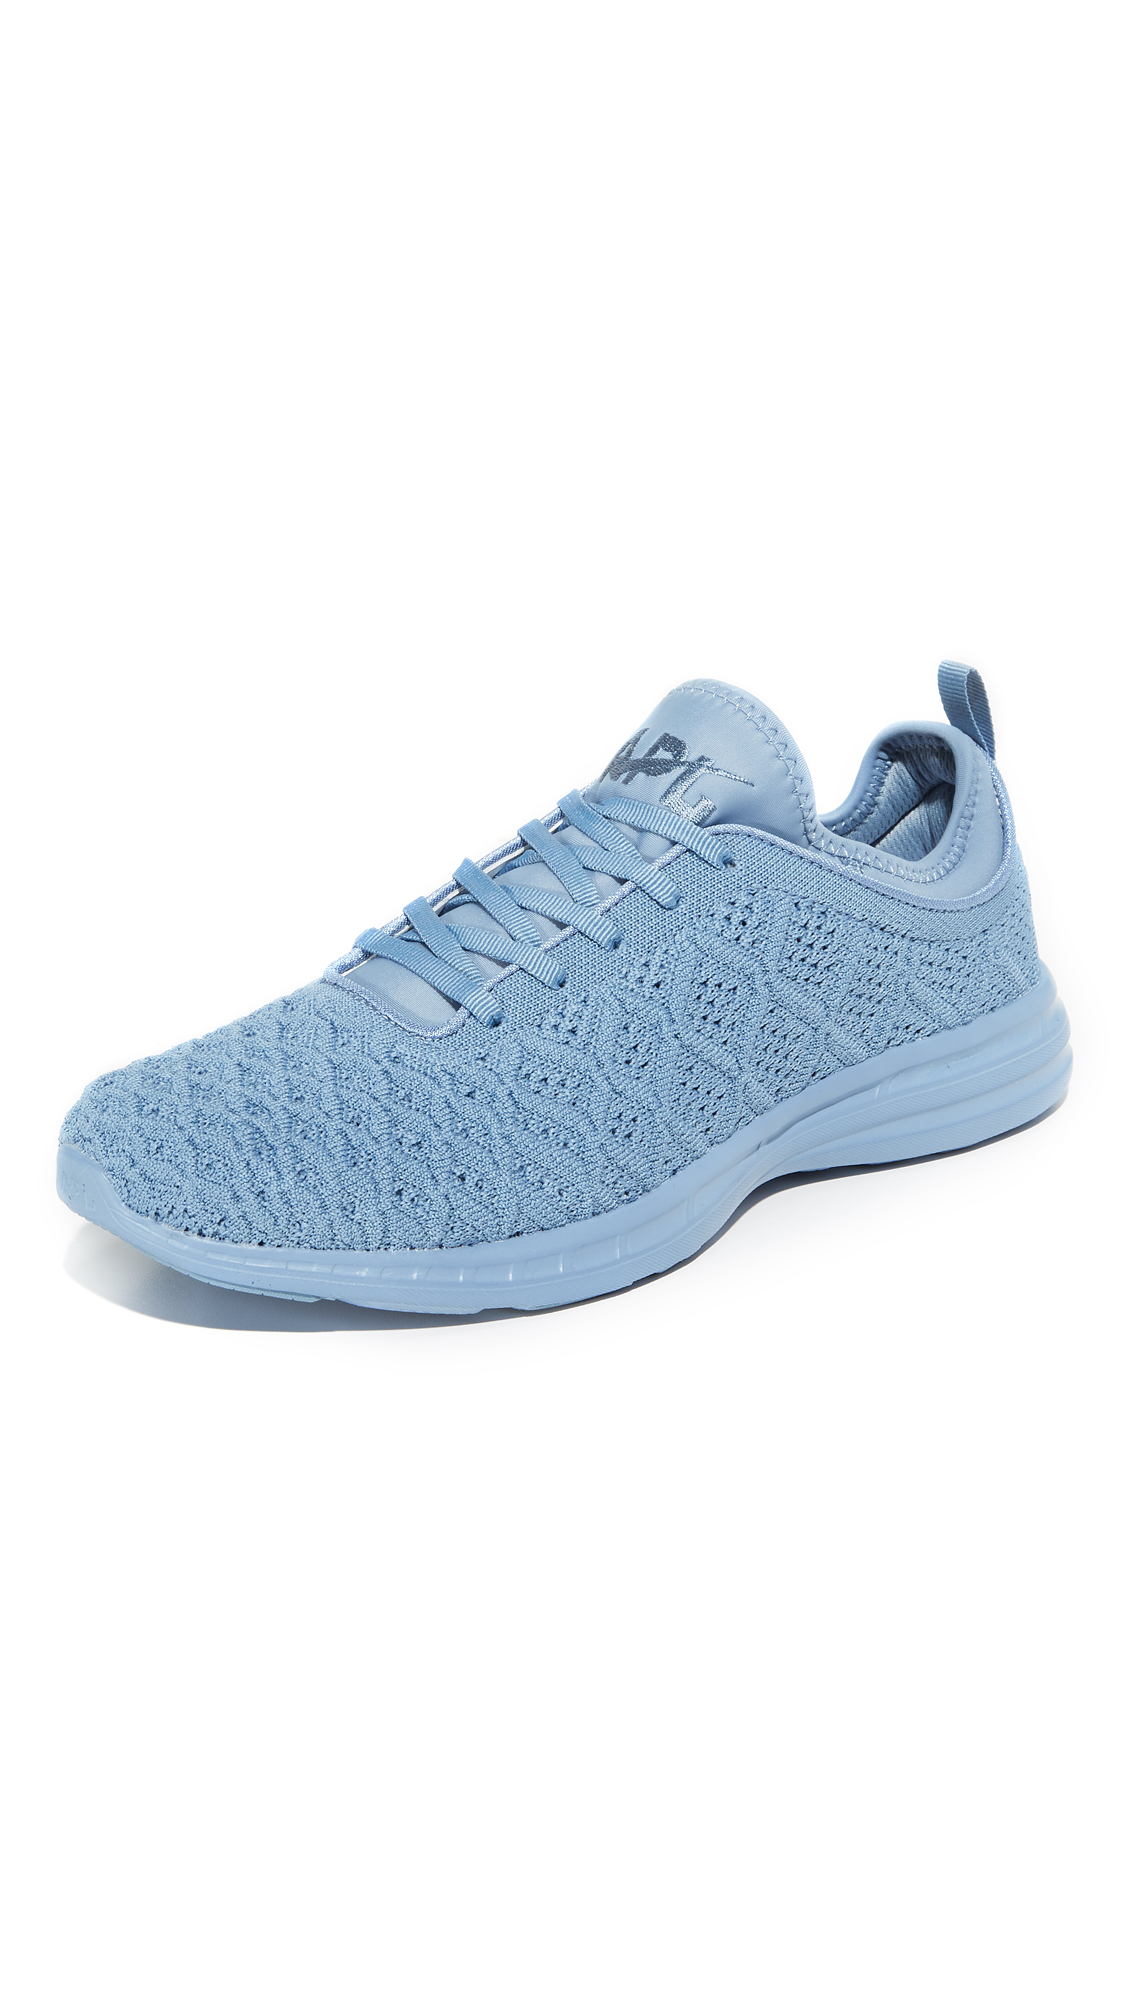 Athletic Propulsion Labs TechLoom Phantom Mesh Running Sneakers J0PvCWCeuR